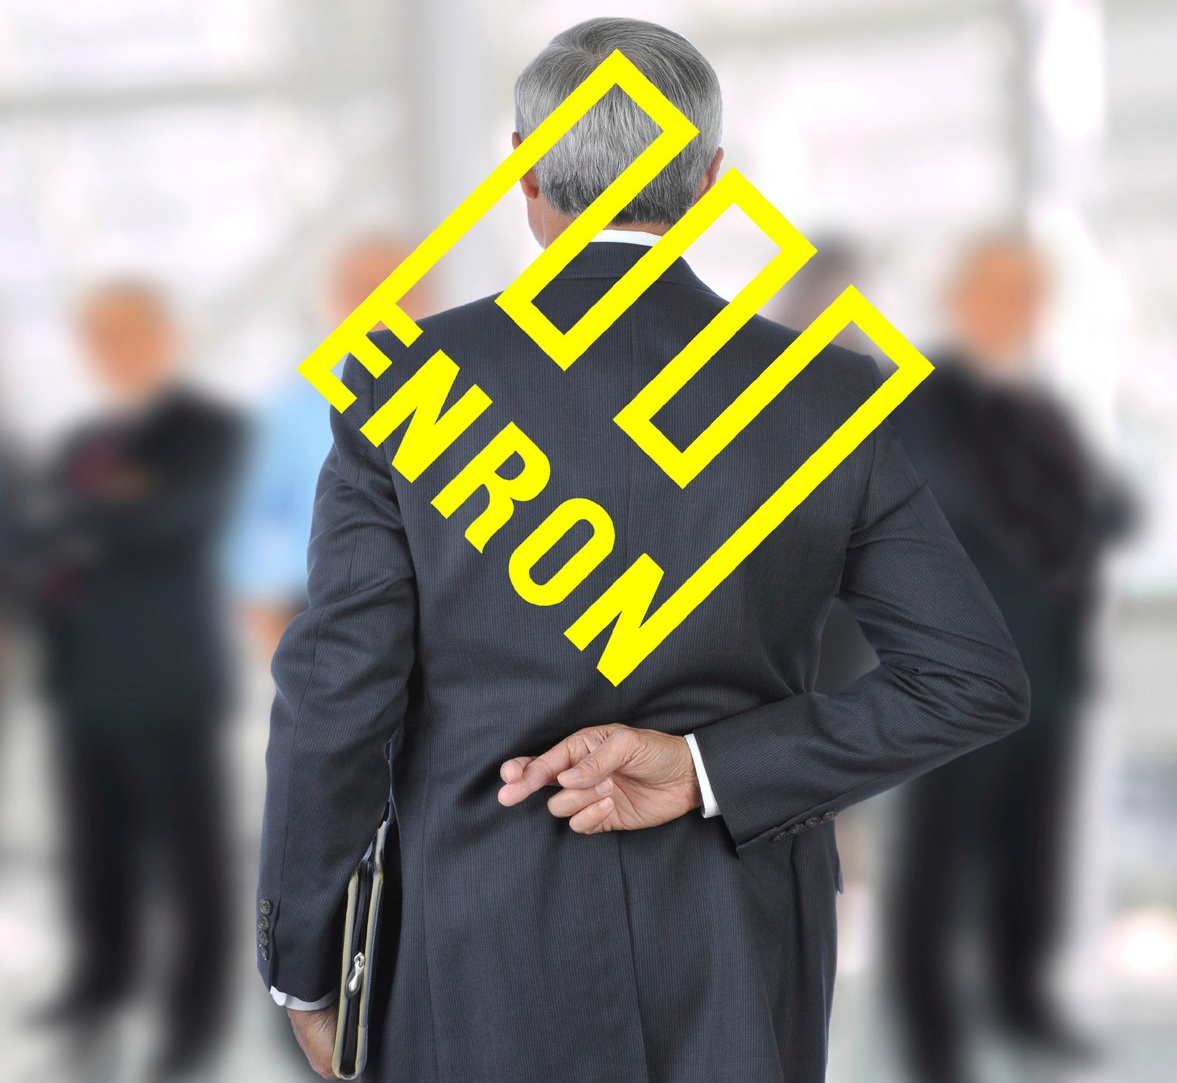 fall of enron The rise and fall of enron: ethical issues february 22, 2018 paypervids business 0 before its collapse in december 2001, enron was ranked by fortune as the 7 th largest company in the united states and was viewed as one of the most innovative companies in the world.